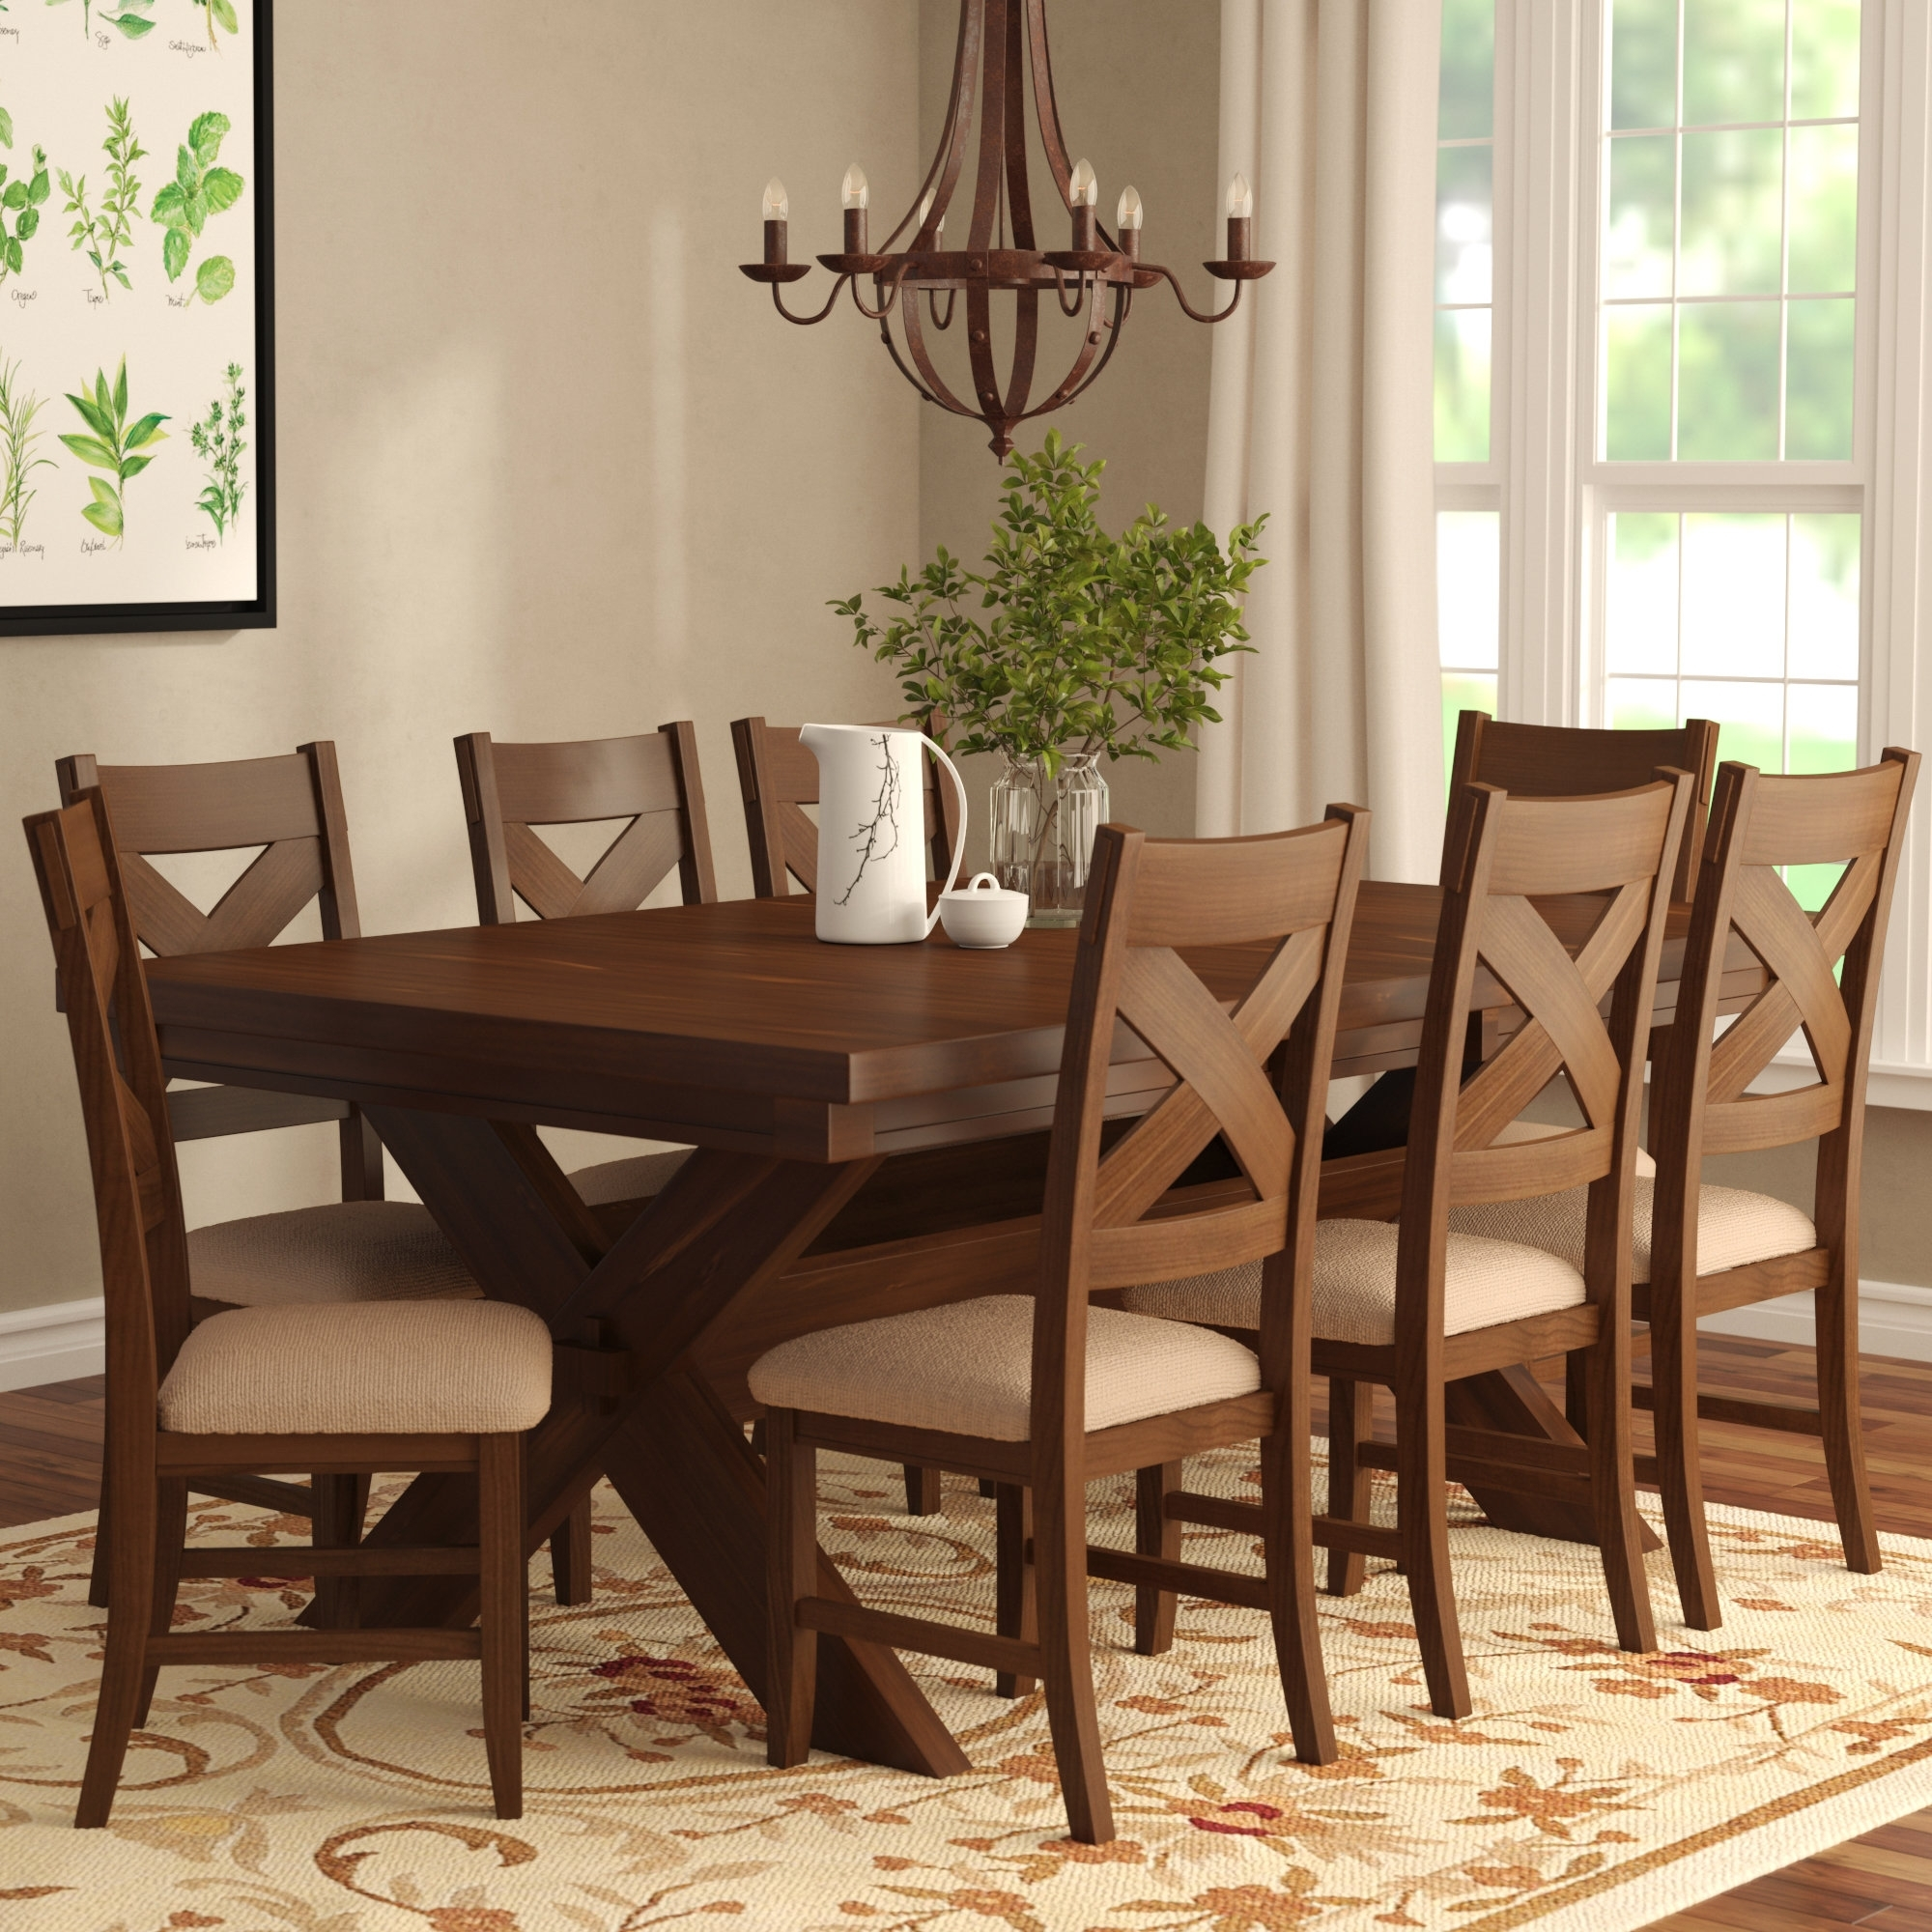 Laurel Foundry Modern Farmhouse Isabell 9 Piece Dining Set & Reviews Pertaining To Recent Caden 6 Piece Dining Sets With Upholstered Side Chair (Photo 17 of 20)